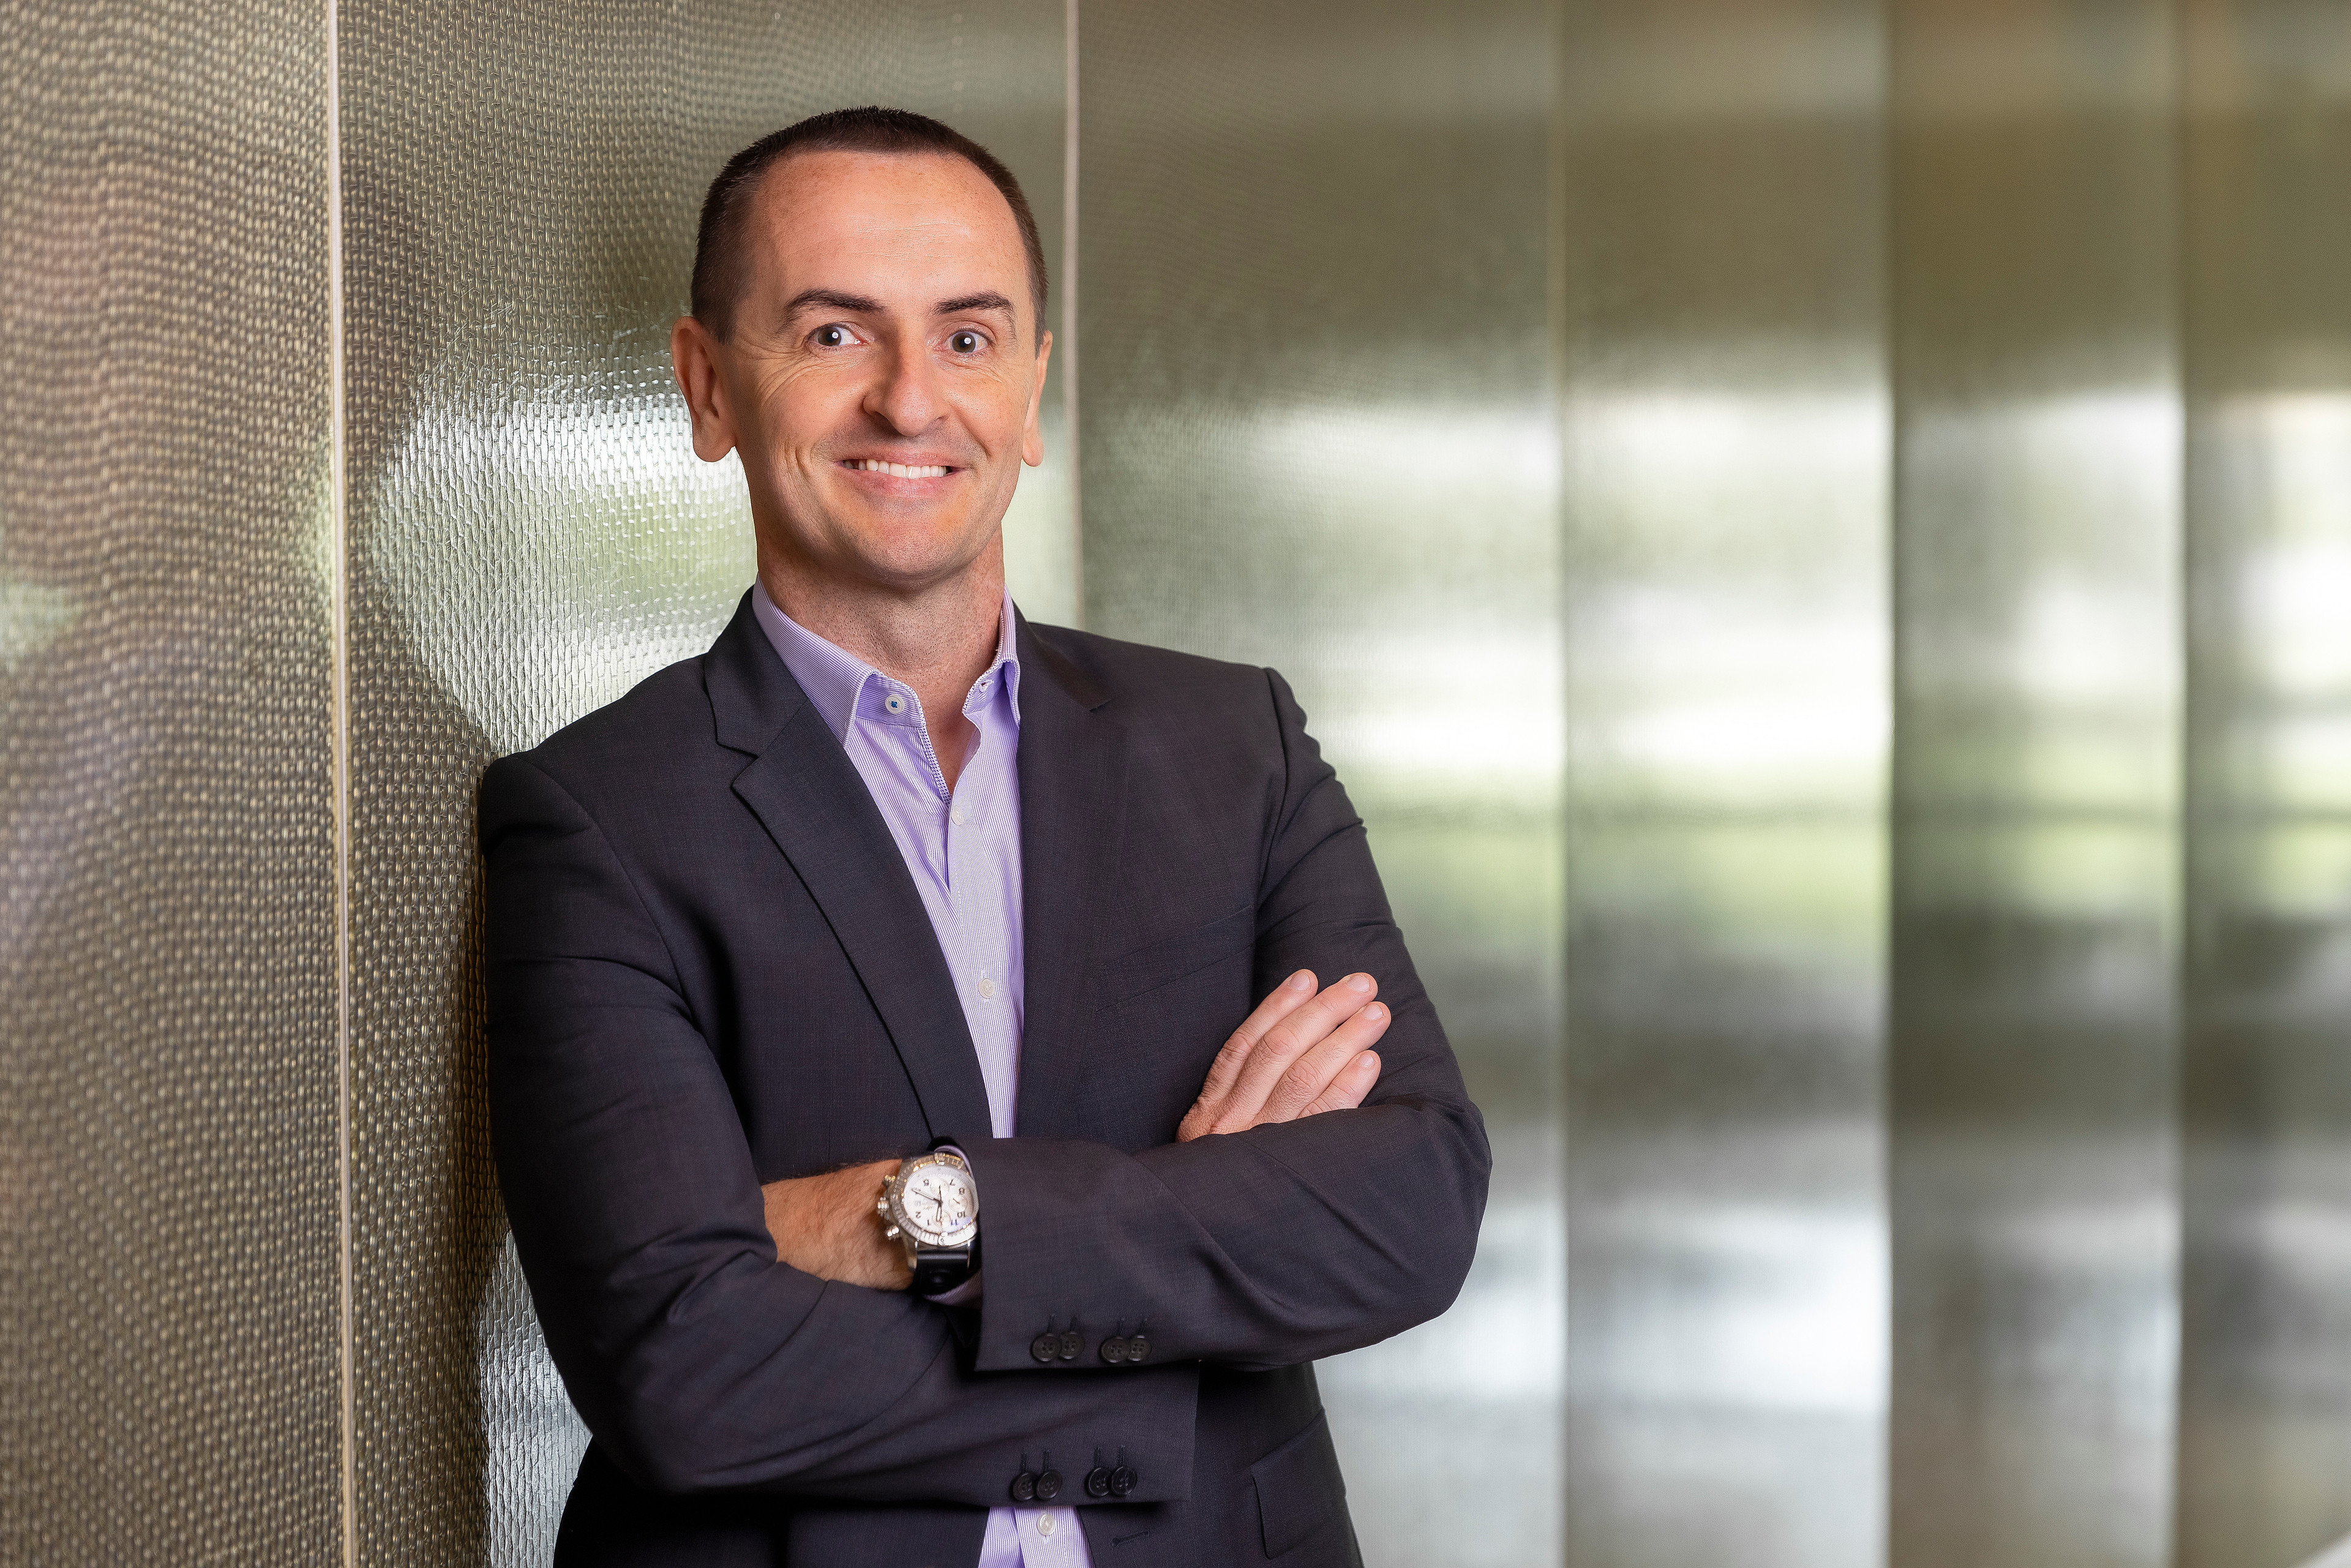 Mr. Pluta is responsible for leading the development and execution of Ryder customer-facing, new technology and innovation products for Ryder Fleet Management Solutions, the company's largest business segment. (Photo: Business Wire)